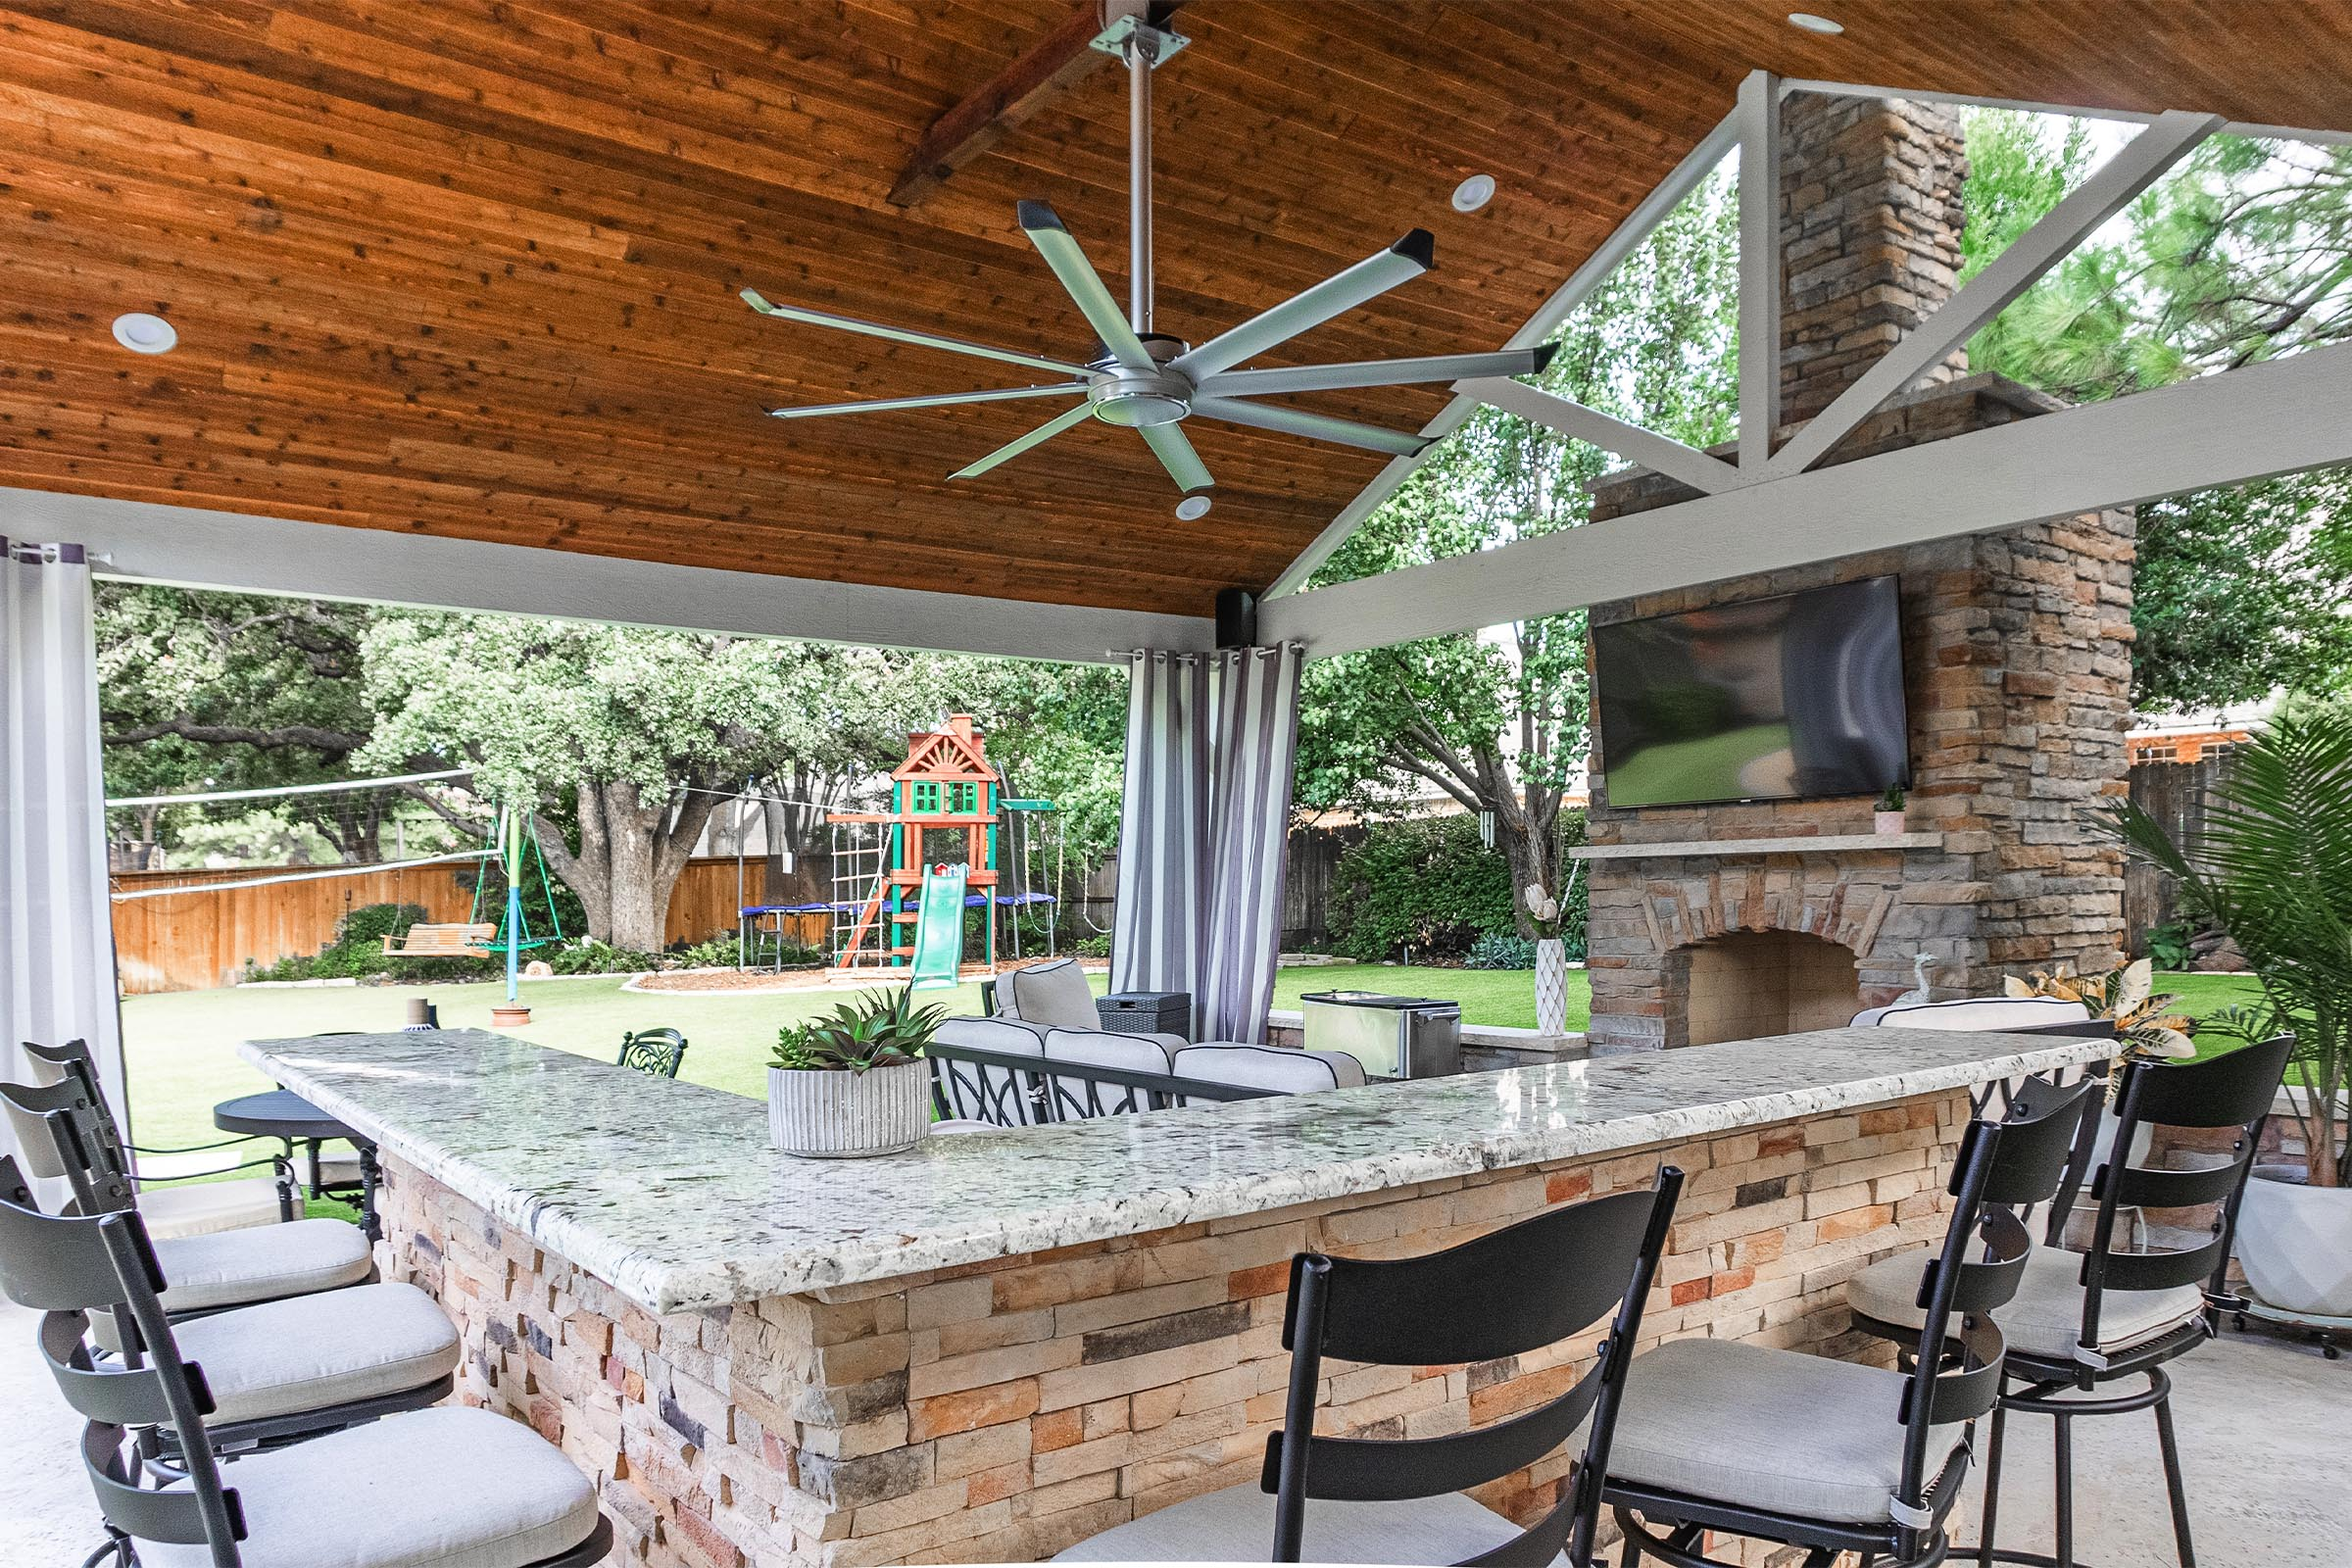 Outdoor Kitchens, Patio Covers | Fort Worth, Burleson TX ... on Dfw Complete Outdoor Living id=14255